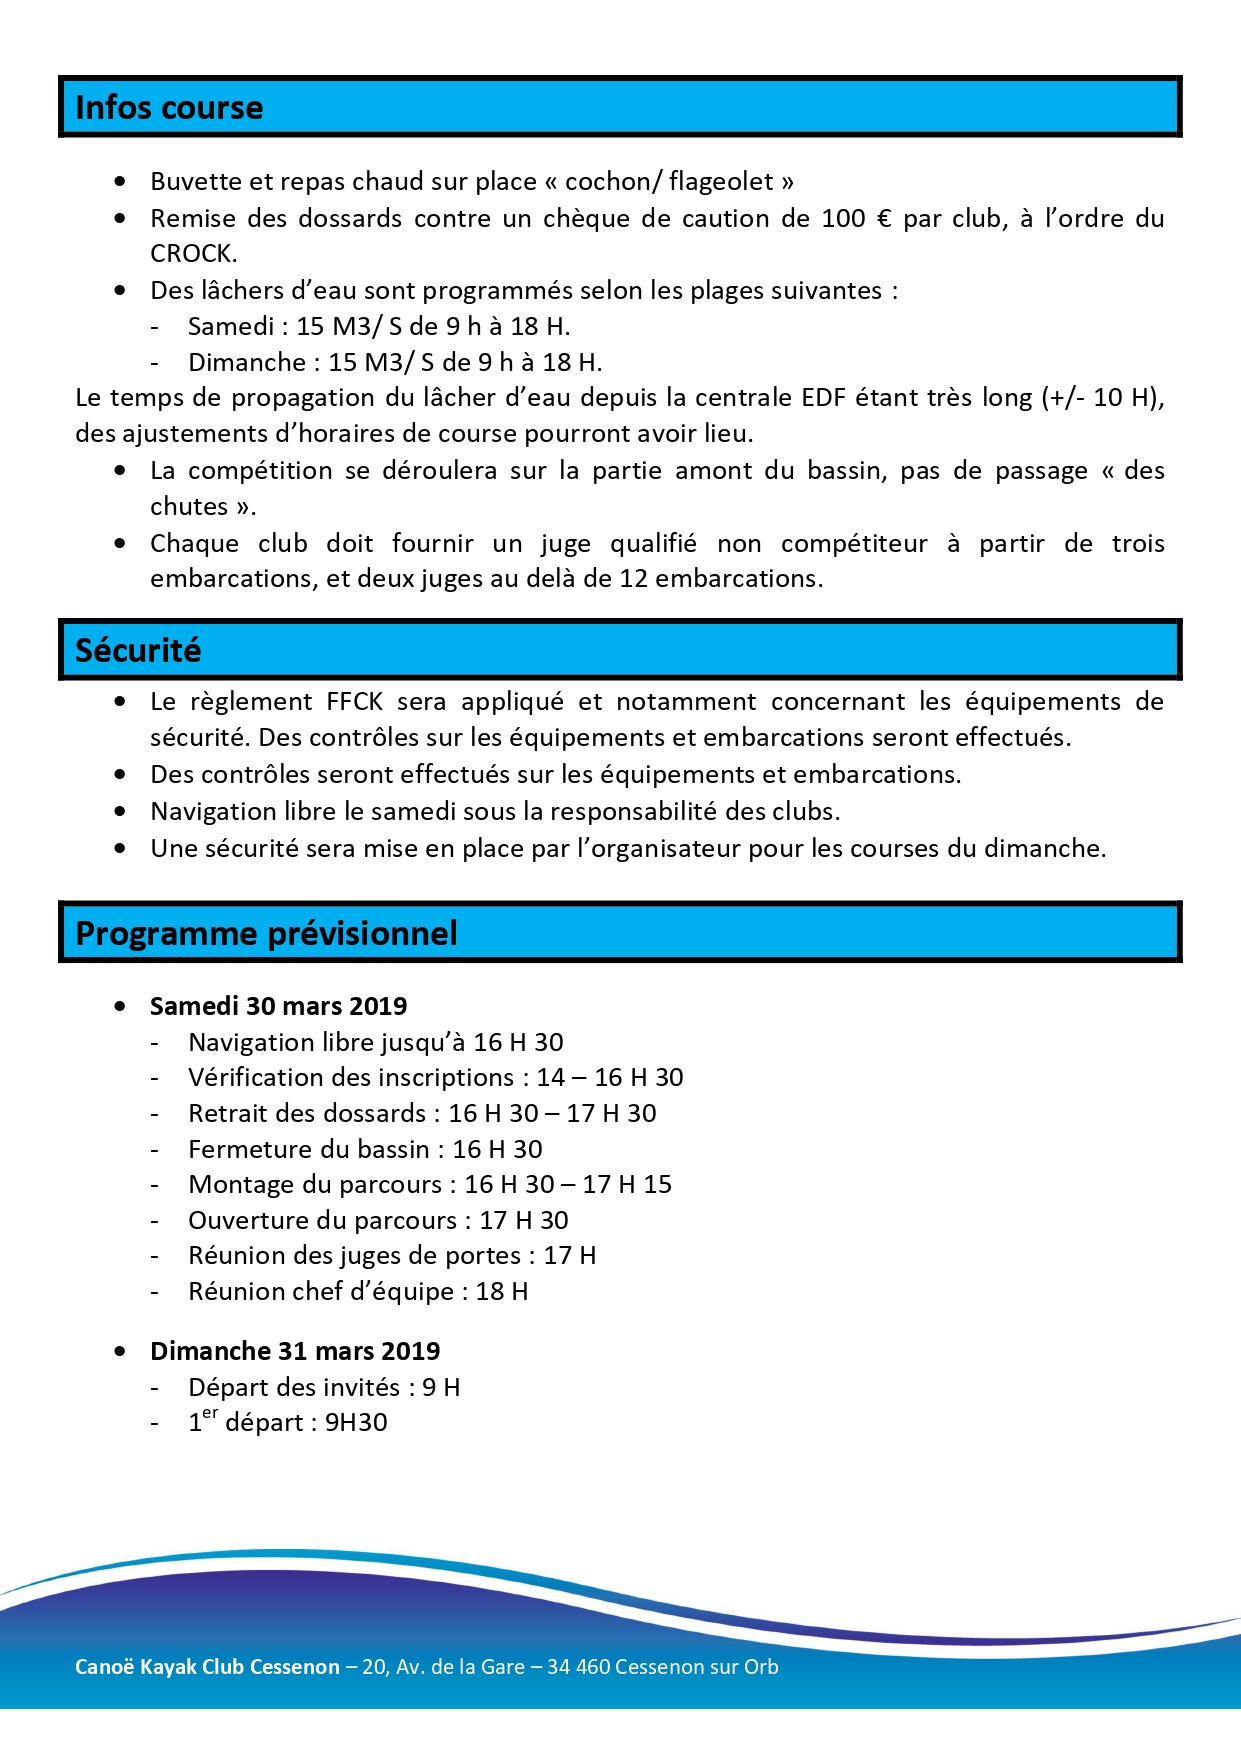 4010 info course n3 2019 avec affiche pages to jpg 0003